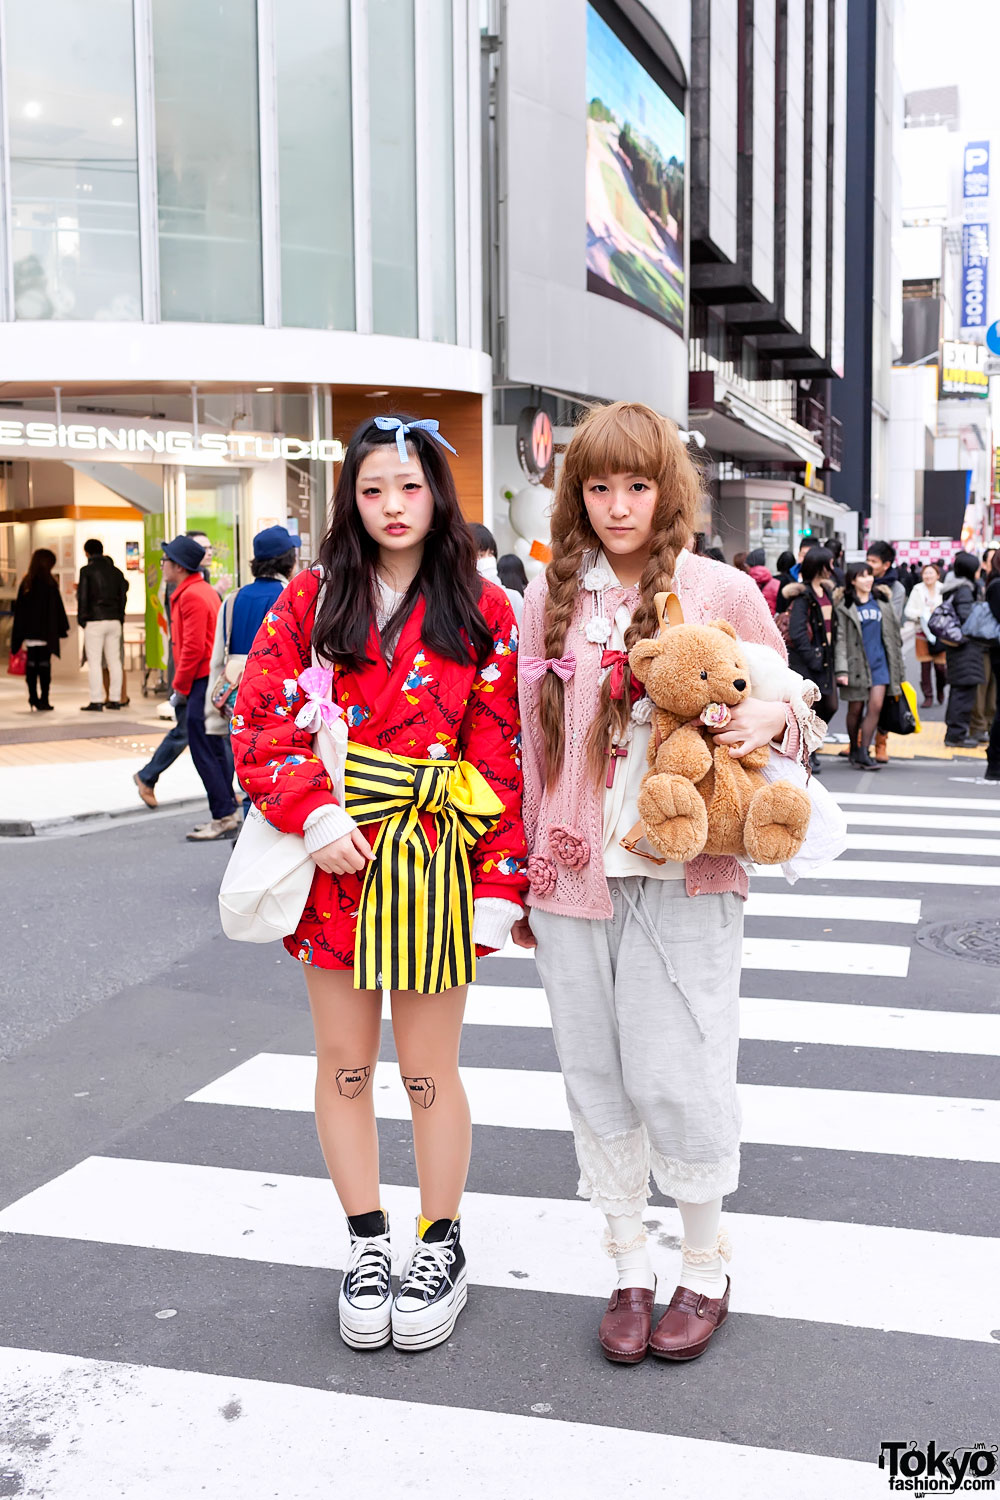 Harajuku Girls Colorful Fashion Amp Cute Teddy Bears